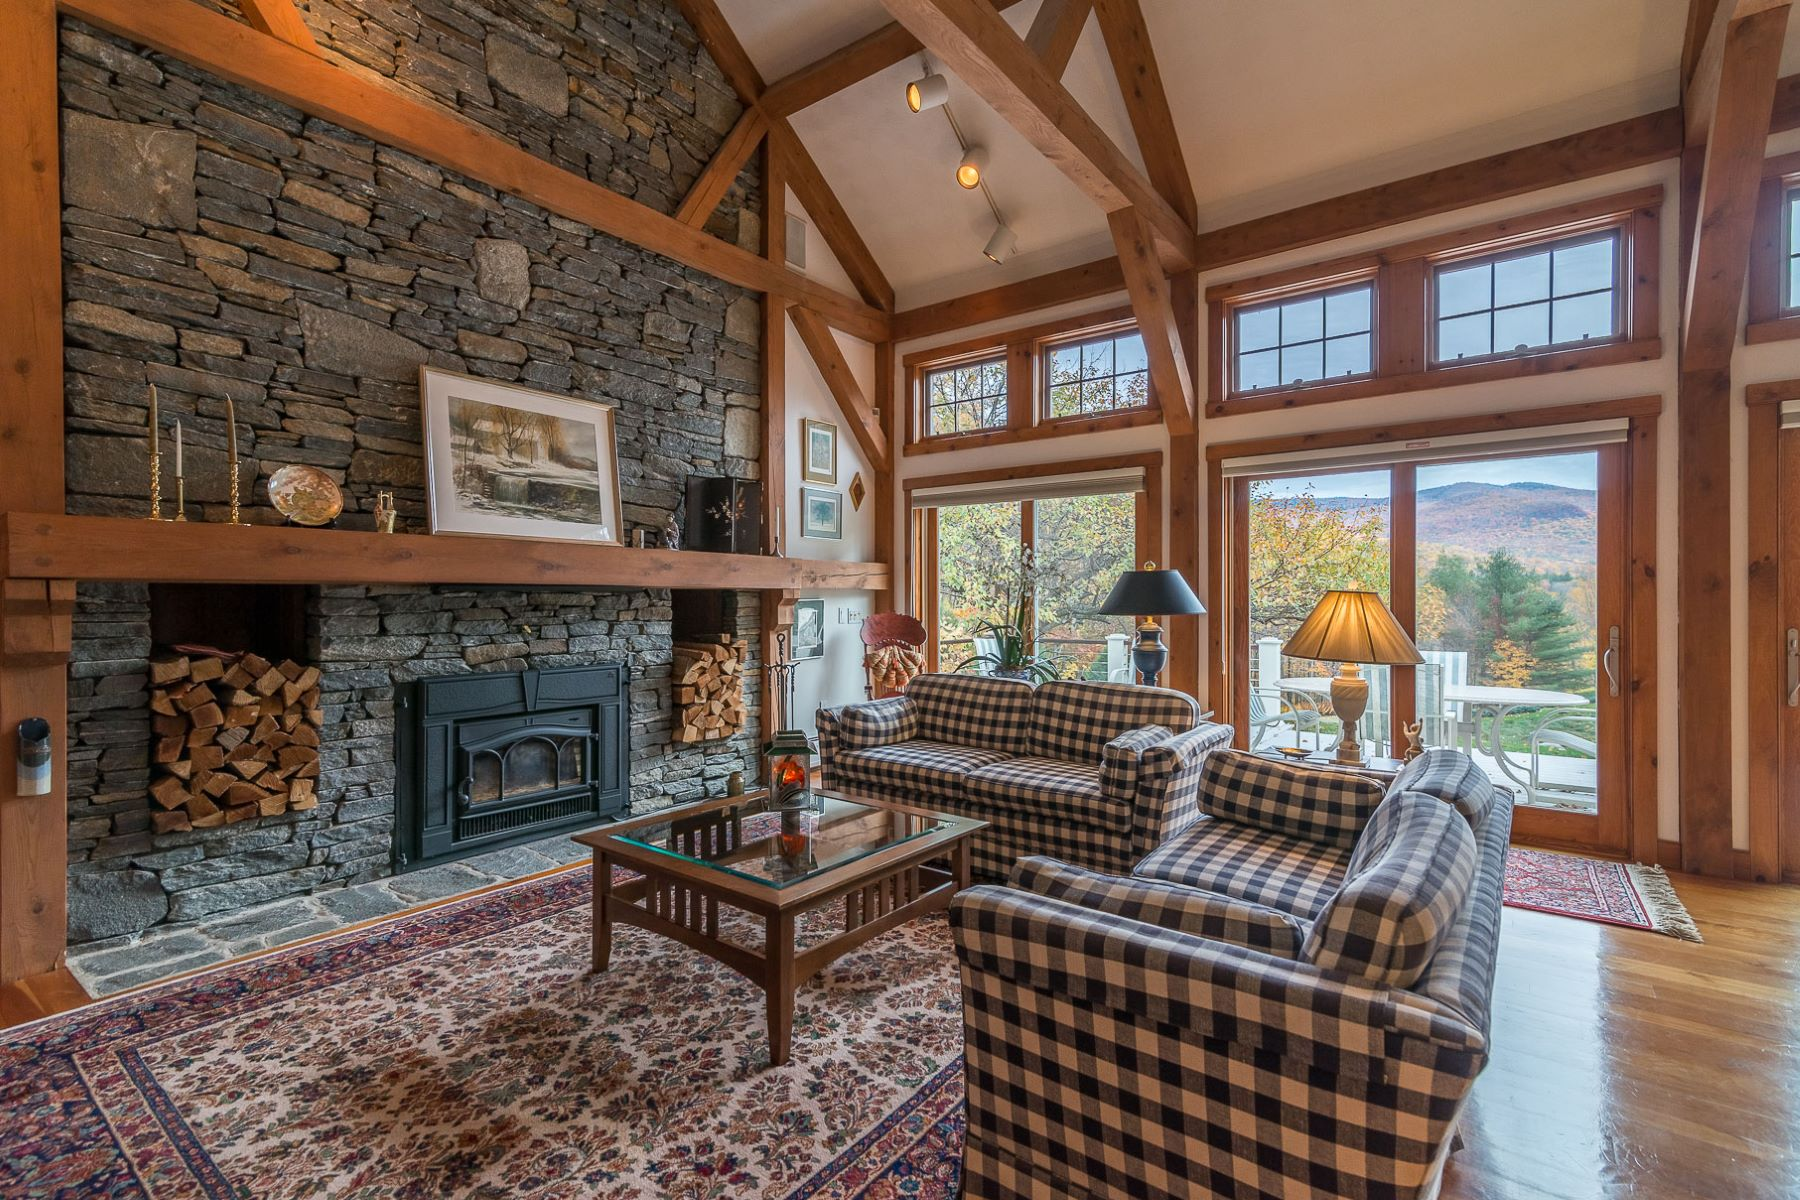 Single Family Home for Sale at Exquisite Custom Home with Views 321 Rogers Rd Rupert, Vermont 05251 United States